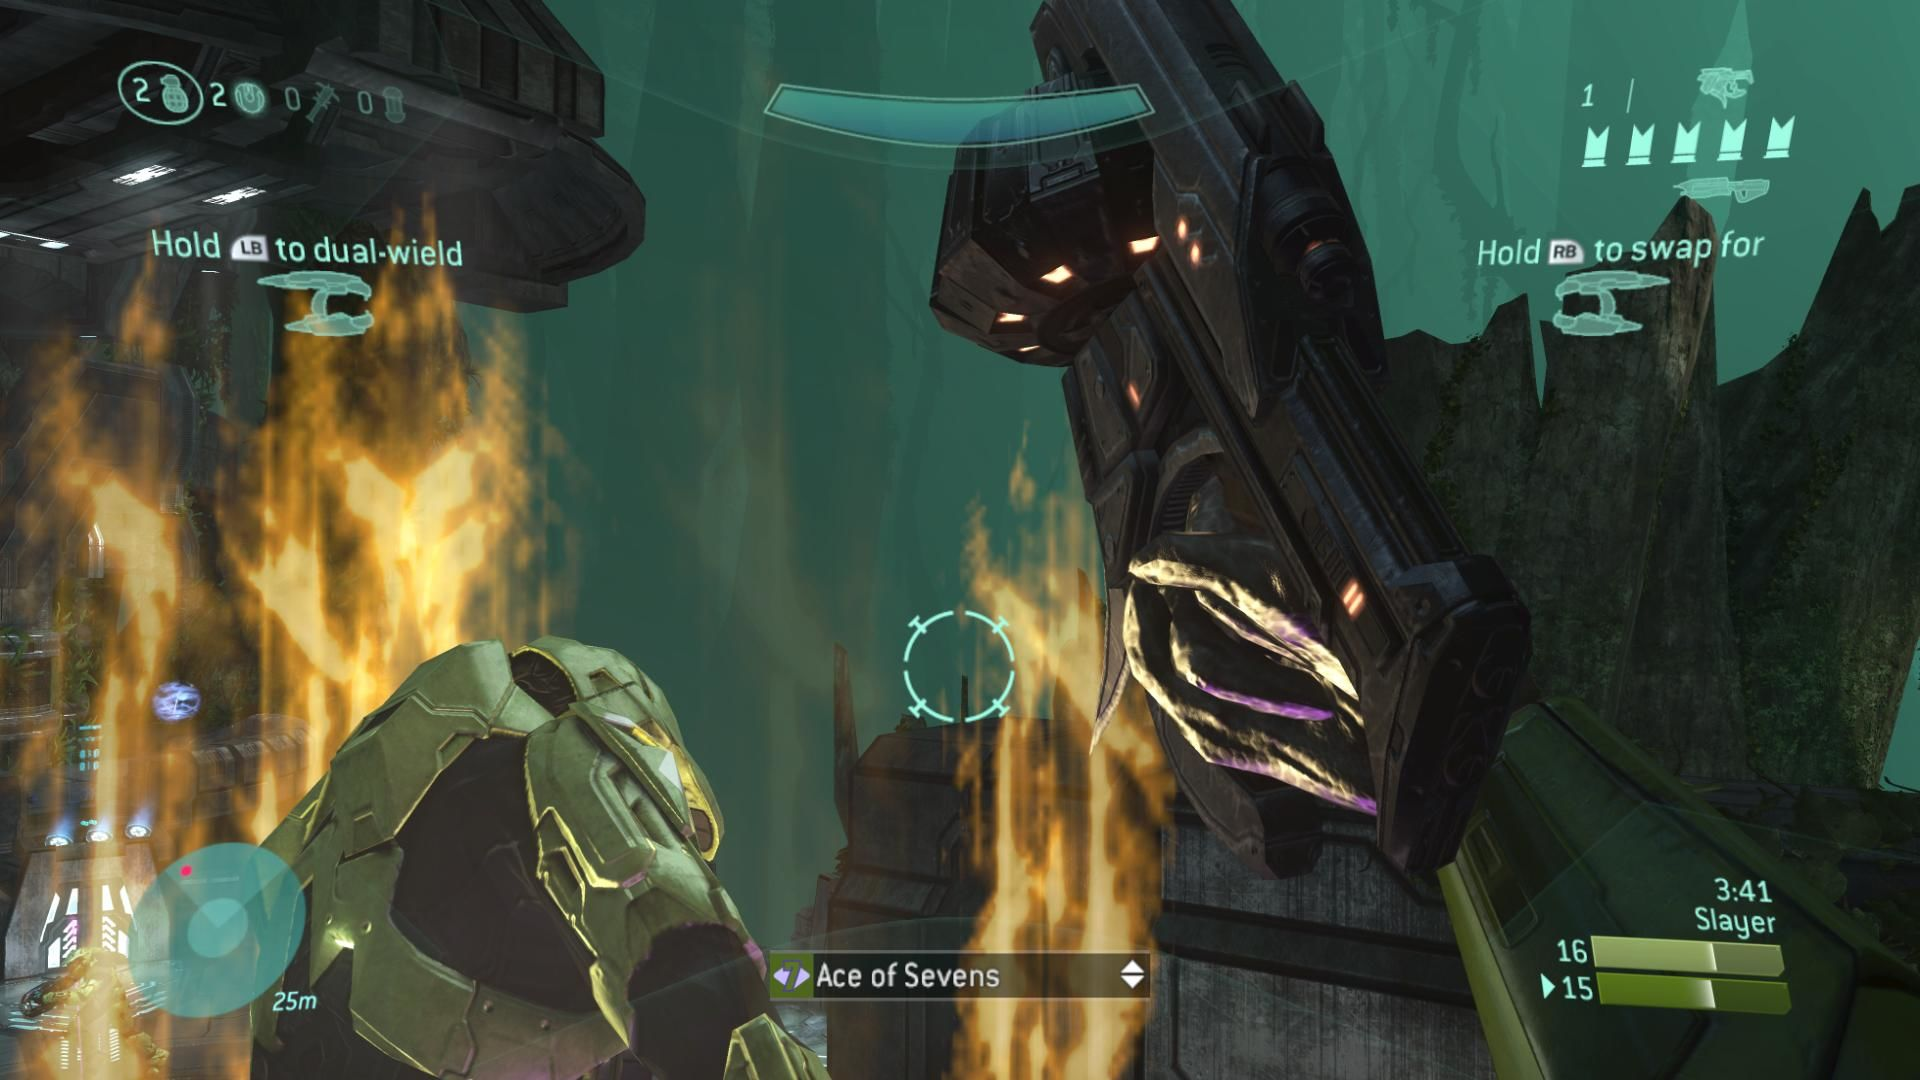 Halo 3 Xbox 360 The aftermath of a melee attack to the back using the new Mauler on Guardian.